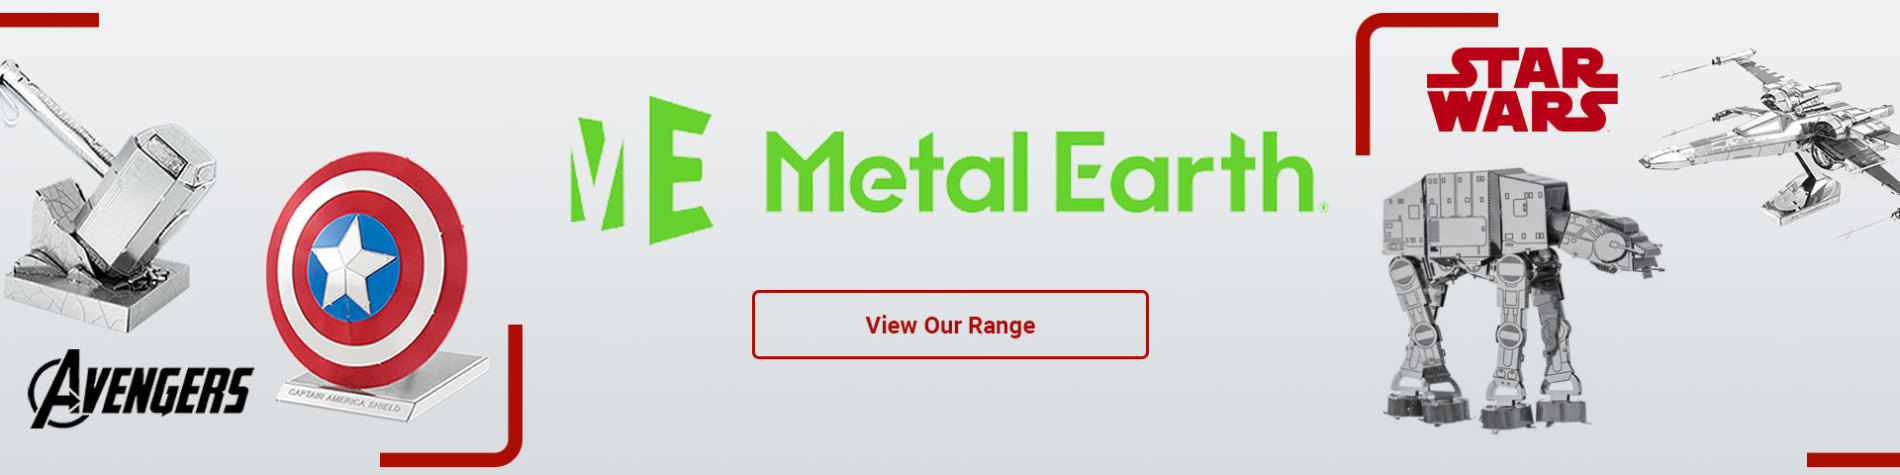 view our range of Metal Earth models